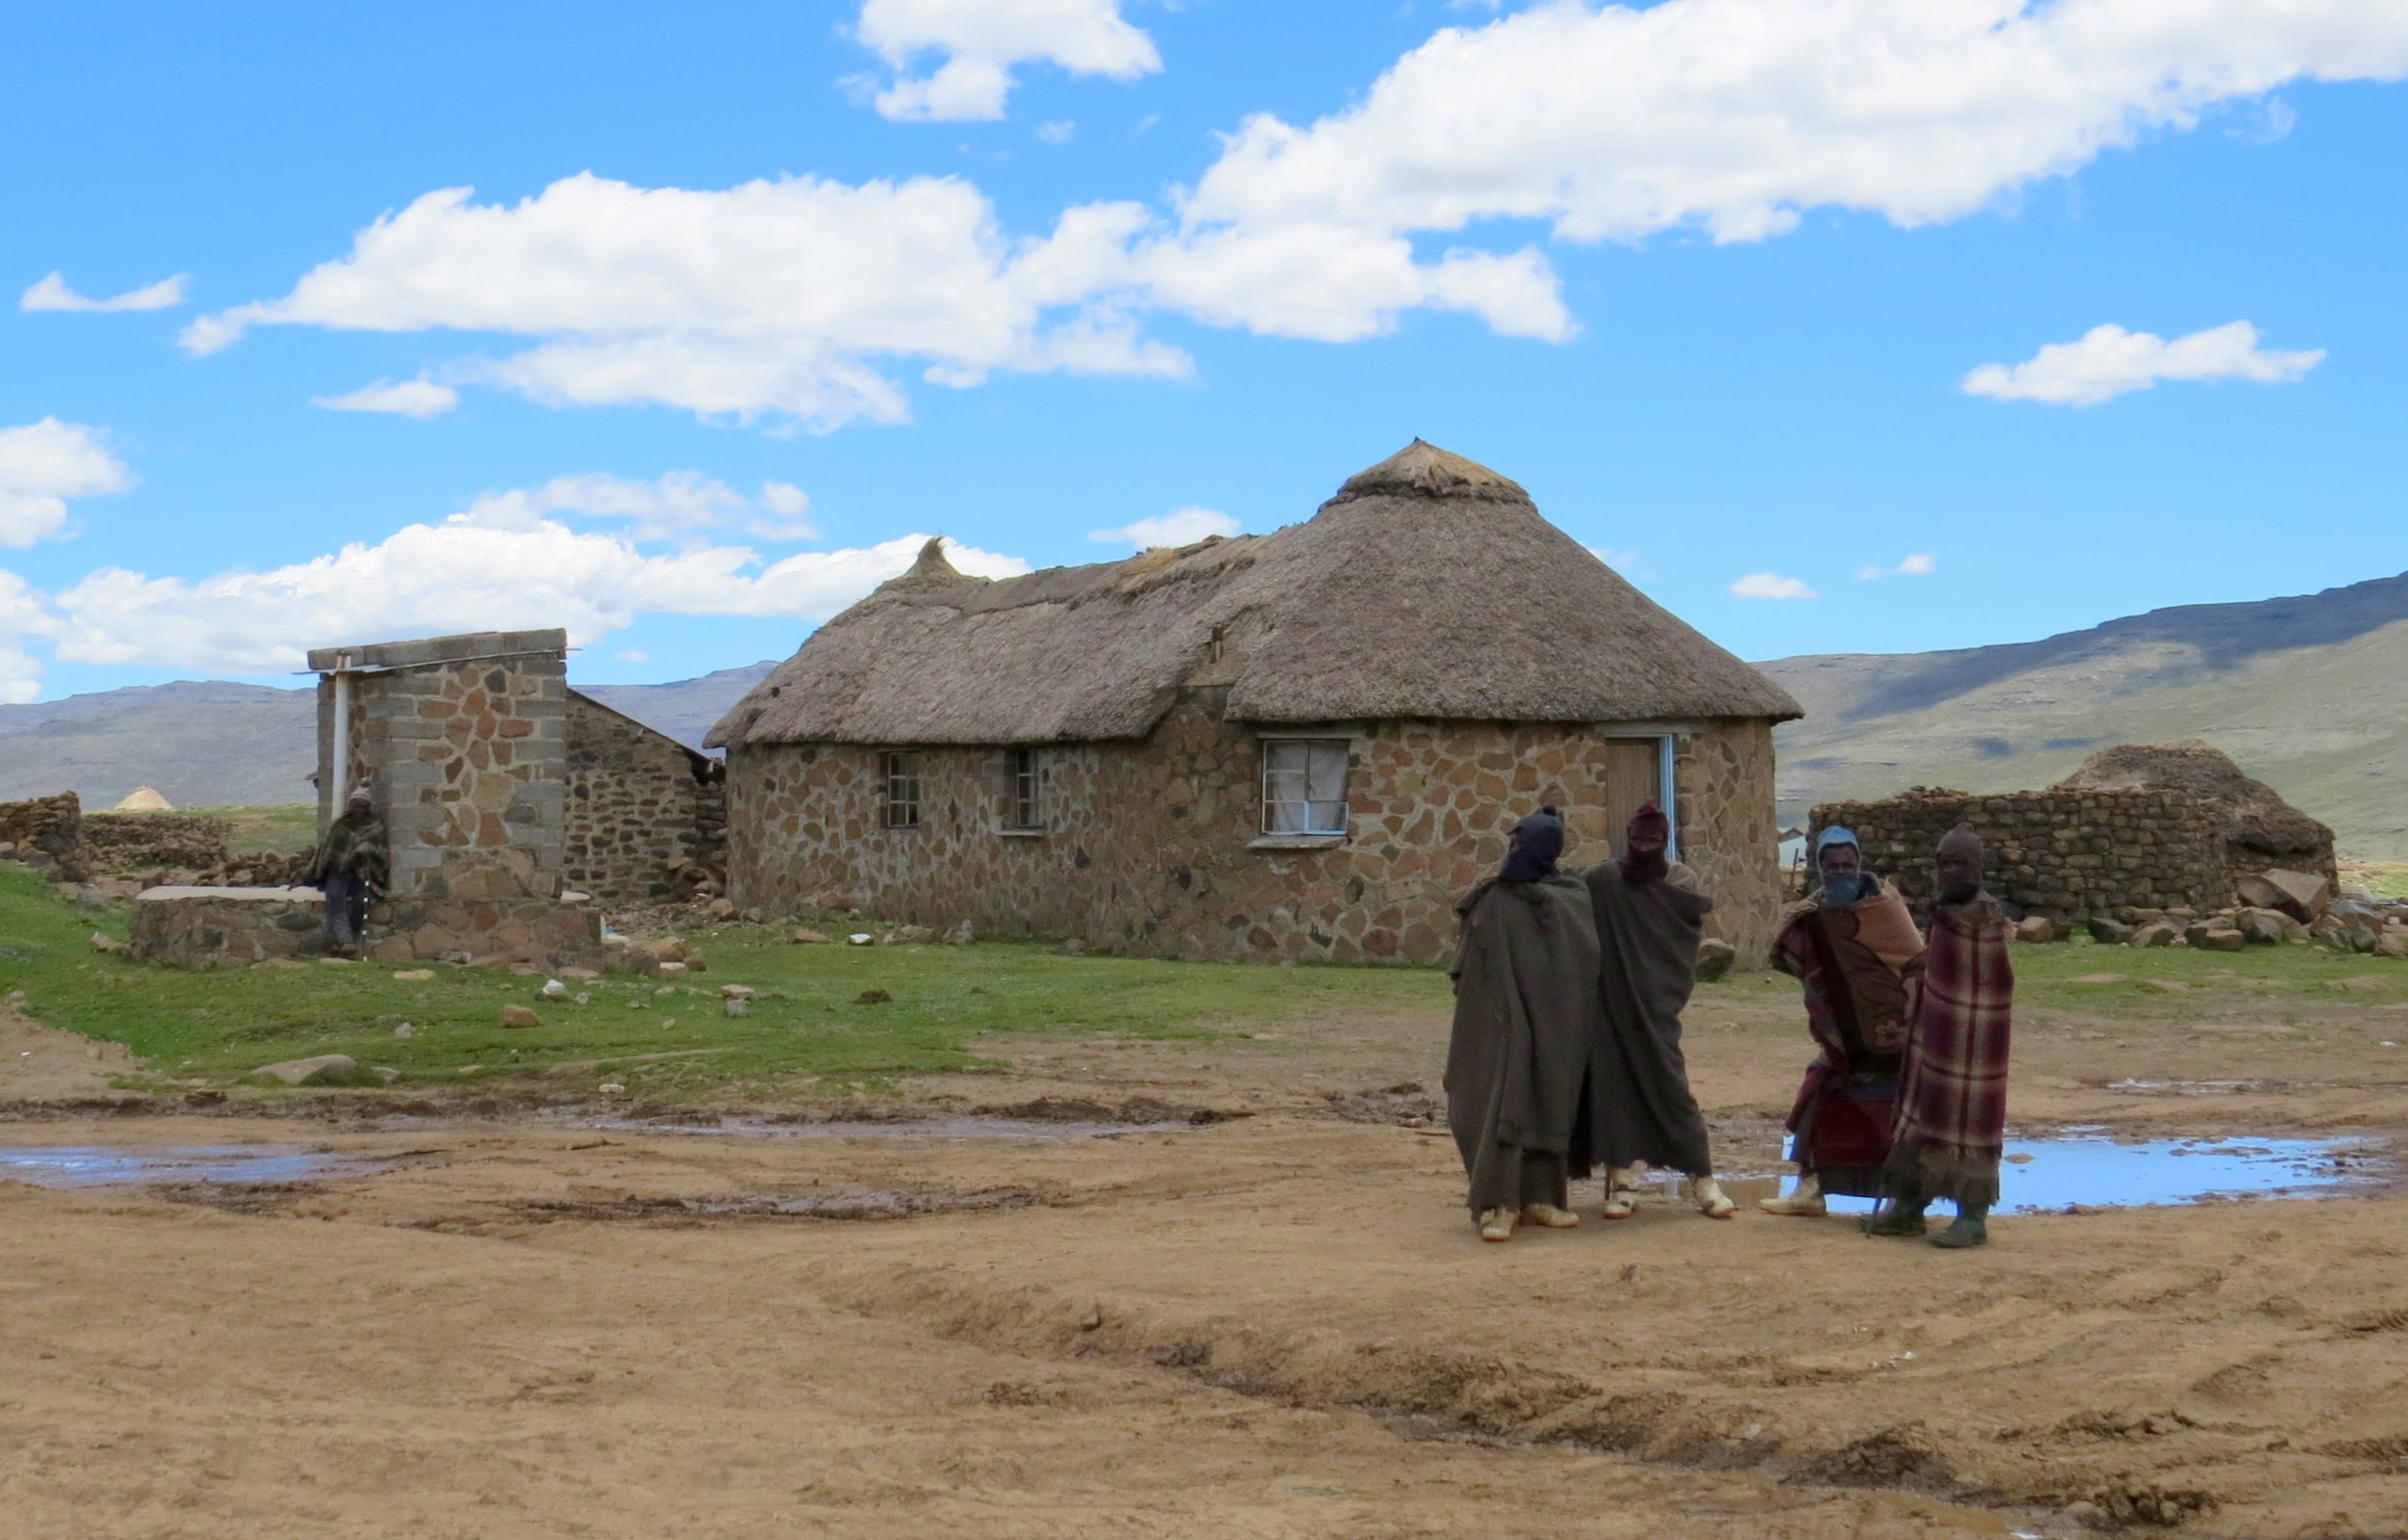 The tiny village of Mokhotlong was barren.